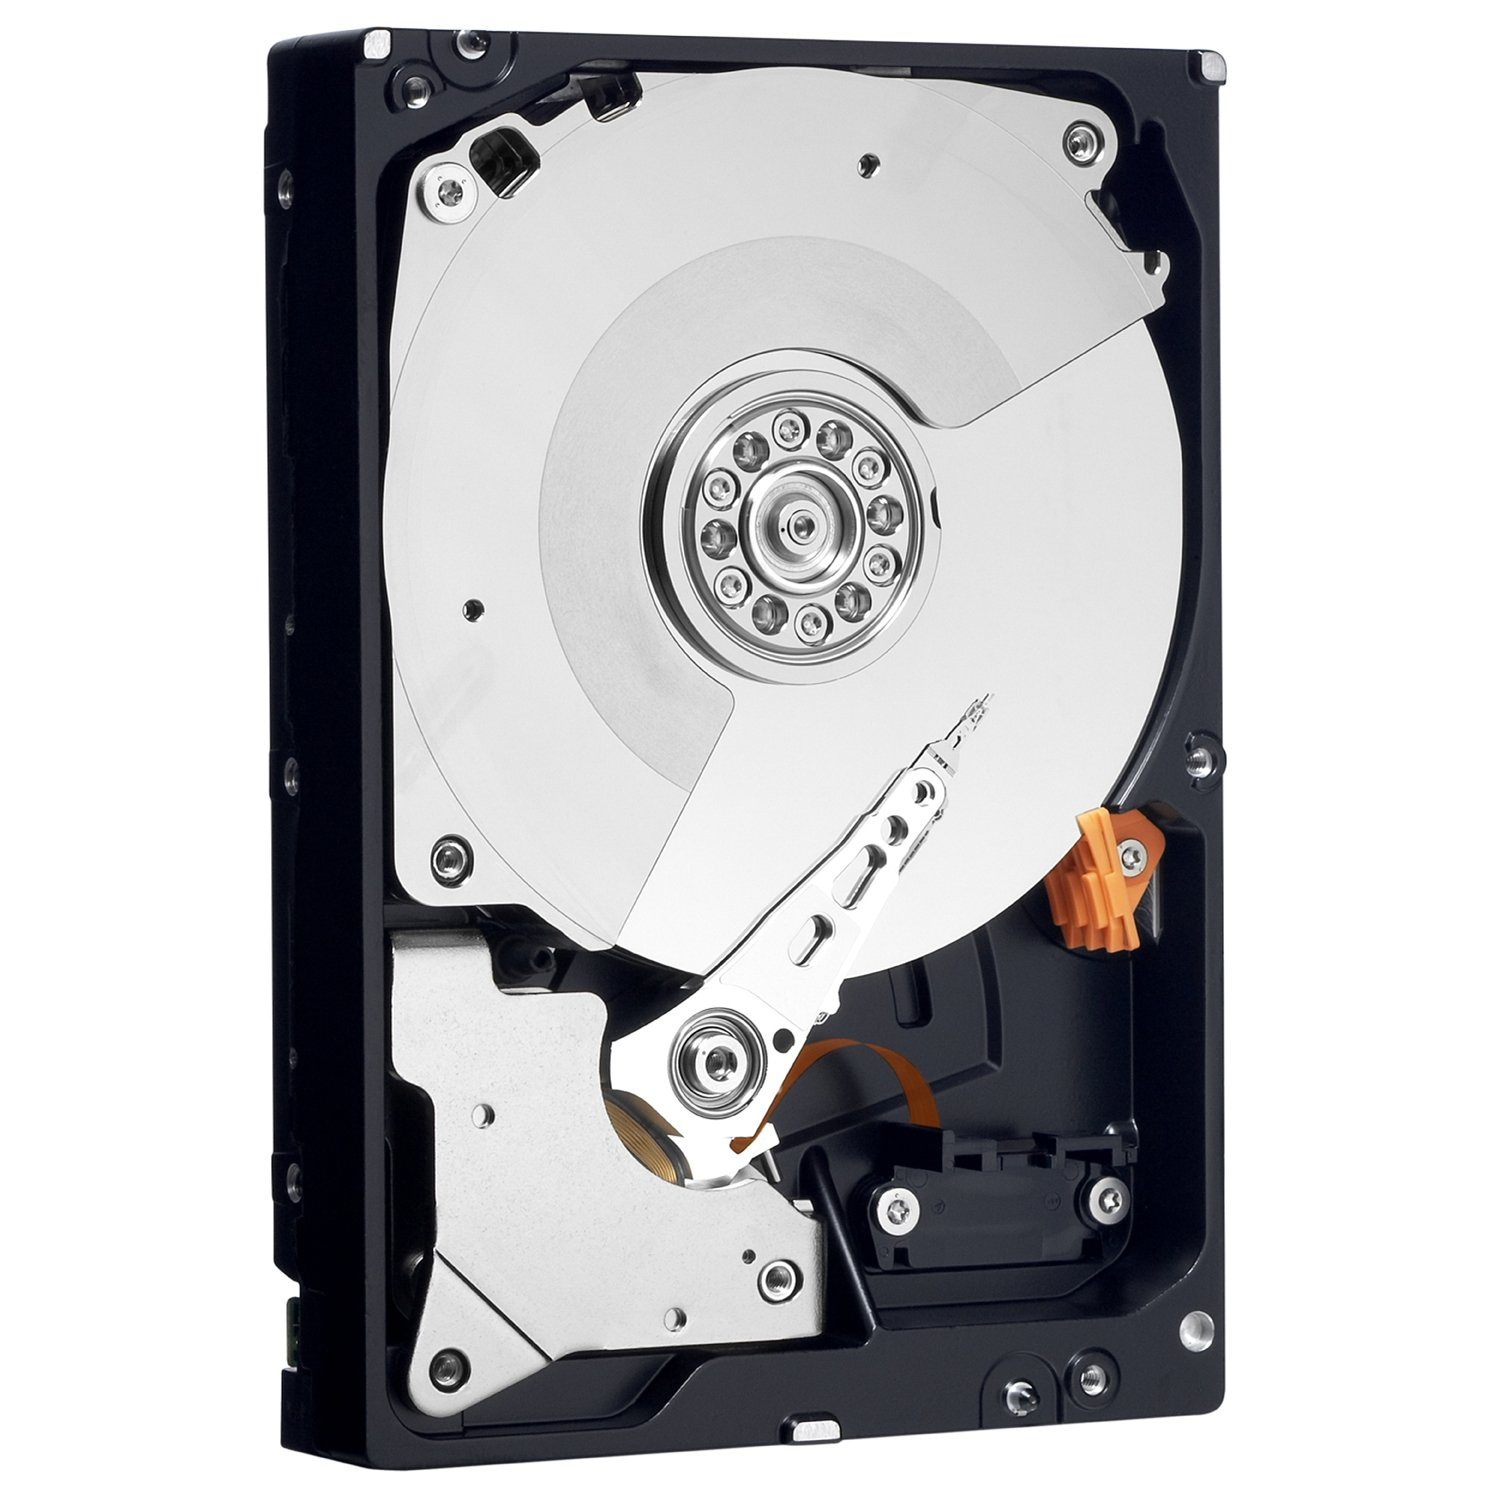 New Western Digital RE4 WD5003ABYX 500GB SATA2 7200rpm 64MB Enterprise Hard Drive 3.5 Inch by Western Digital (Image #1)